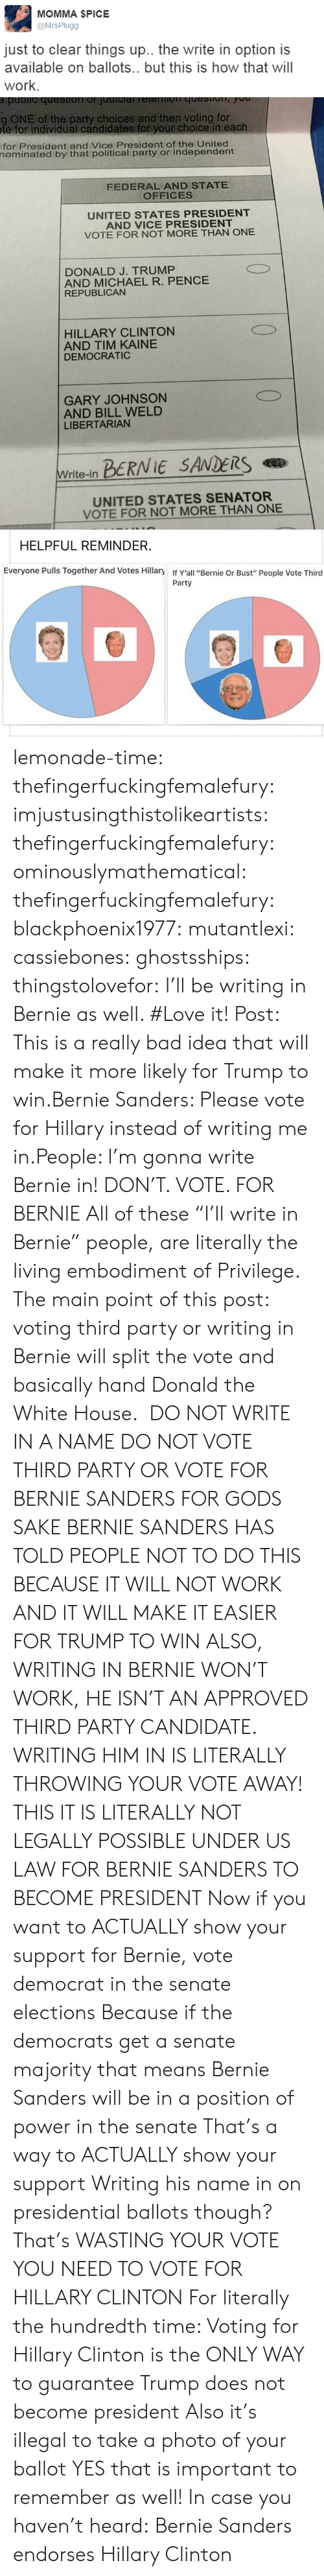 "Bad, Bernie Sanders, and cnn.com: МОММА $PICЕ  @MrsPlugg  just to clear things up. the write in option is  available on ballots.. but this is how that will  work.   ONE of the party choices and then voting for  te for individual candidates for your choice in each  for President and Vice President of the United  nominated by that political party or independent  FEDERAL AND STATE  OFFICES  UNITED STATES PRESIDENT  AND VICE PRESIDENT  VOTE FOR NOT MORE THAN ONE  DONALD J. TRUMP  AND MICHAEL R. PENCE  REPUBLICAN  HILLARY CLINTON  AND TIM KAINE  DEMOCRATIC  GARY JOHNSON  AND BILL WELD  LIBERTARIAN  BERNIE SANDERS  Write-in  UNITED STATES SENATOR  VOTE FOR NOT MORE THAN ONE   HELPFUL REMINDER  Everyone Pulls Together And Votes Hillary  If Y'all ""Bernie Or Bust"" People Vote Third  Party lemonade-time:  thefingerfuckingfemalefury:  imjustusingthistolikeartists:  thefingerfuckingfemalefury:  ominouslymathematical:  thefingerfuckingfemalefury:  blackphoenix1977:  mutantlexi:  cassiebones:  ghostsships:  thingstolovefor:    I'll be writing in Bernie as well. #Love it!  Post: This is a really bad idea that will make it more likely for Trump to win.Bernie Sanders: Please vote for Hillary instead of writing me in.People: I'm gonna write Bernie in!  DON'T. VOTE. FOR BERNIE  All of these ""I'll write in Bernie"" people, are literally the living embodiment of Privilege.  The main point of this post: voting third party or writing in Bernie will split the vote and basically hand Donald the White House.   DO NOT WRITE IN A NAME DO NOT VOTE THIRD PARTY OR VOTE FOR BERNIE SANDERS FOR GODS SAKE BERNIE SANDERS HAS TOLD PEOPLE NOT TO DO THIS BECAUSE IT WILL NOT WORK AND IT WILL MAKE IT EASIER FOR TRUMP TO WIN   ALSO, WRITING IN BERNIE WON'T WORK, HE ISN'T AN APPROVED THIRD PARTY CANDIDATE. WRITING HIM IN IS LITERALLY THROWING YOUR VOTE AWAY!  THIS IT IS LITERALLY NOT LEGALLY POSSIBLE UNDER US LAW FOR BERNIE SANDERS TO BECOME PRESIDENT Now if you want to ACTUALLY show your support for Bernie, vote democrat in the senate elections Because if the democrats get a senate majority that means Bernie Sanders will be in a position of power in the senate  That's a way to ACTUALLY show your support  Writing his name in on presidential ballots though? That's WASTING YOUR VOTE  YOU NEED TO VOTE FOR HILLARY CLINTON  For literally the hundredth time: Voting for Hillary Clinton is the ONLY WAY to guarantee Trump does not become president   Also it's illegal to take a photo of your ballot  YES that is important to remember as well!  In case you haven't heard: Bernie Sanders endorses Hillary Clinton"